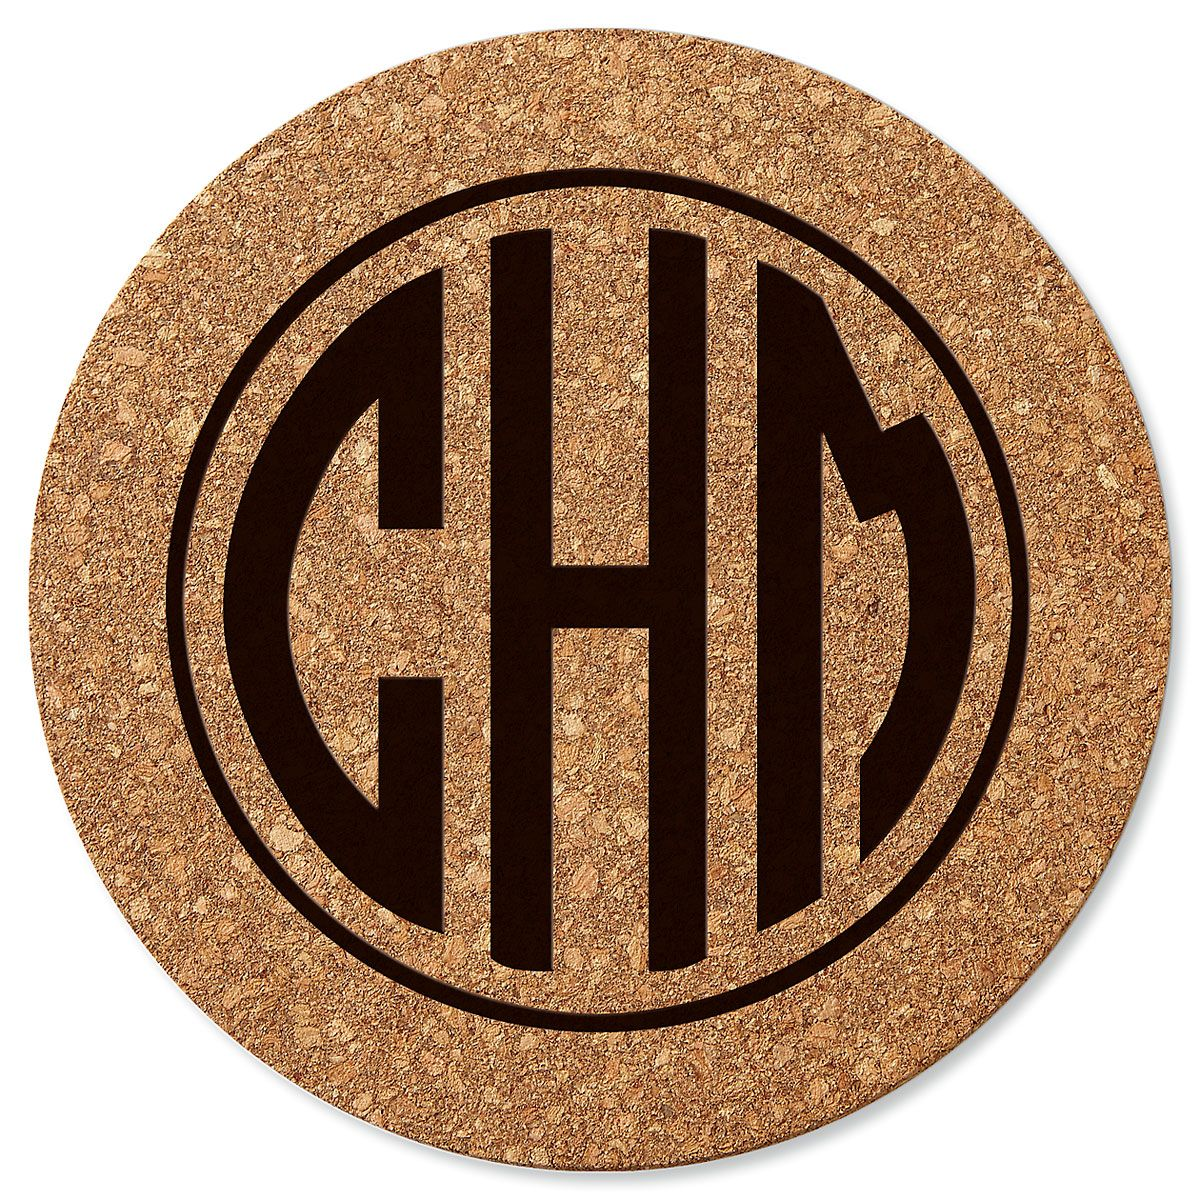 Personalized Circle Monogram Round Cork Trivet  by Designer Jillian Yee-Pham